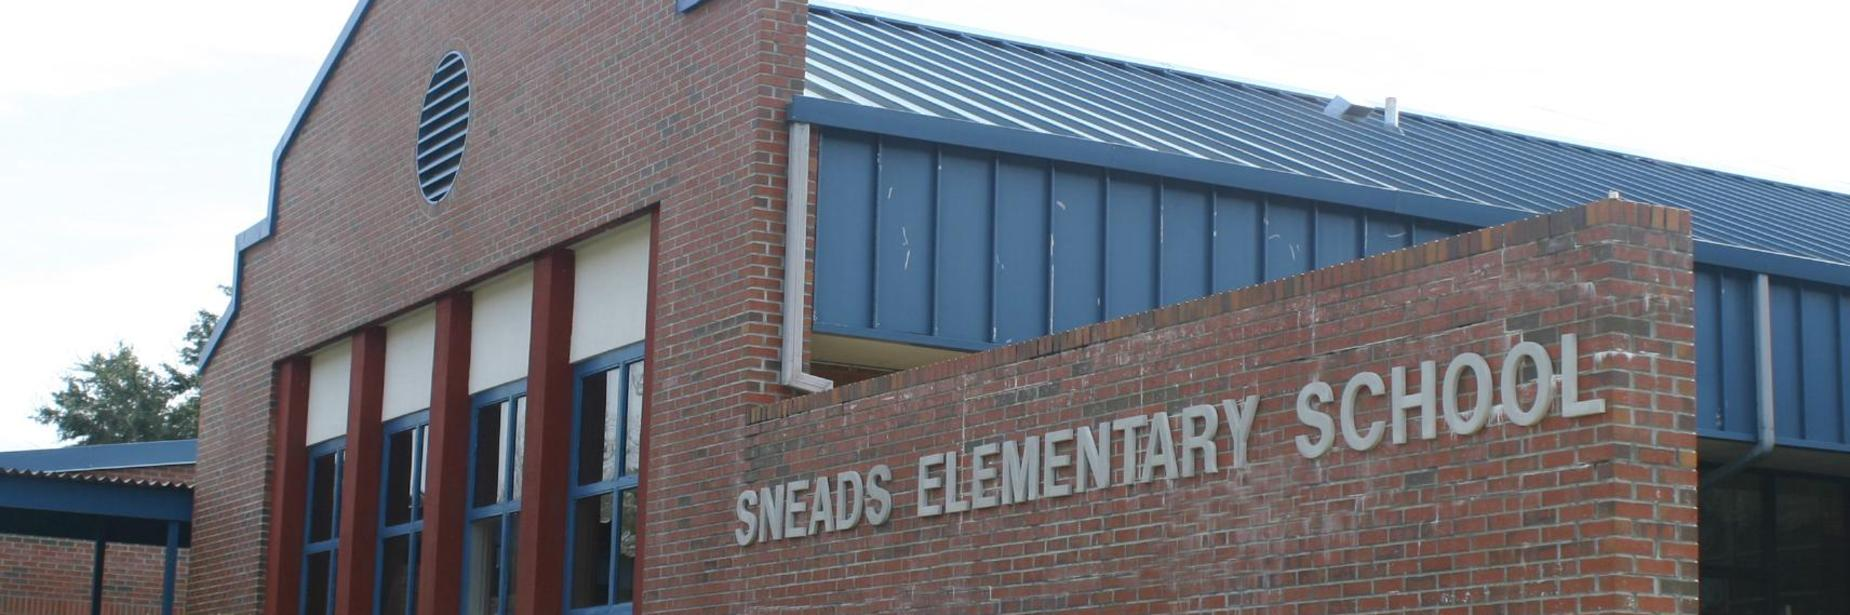 ses front of building